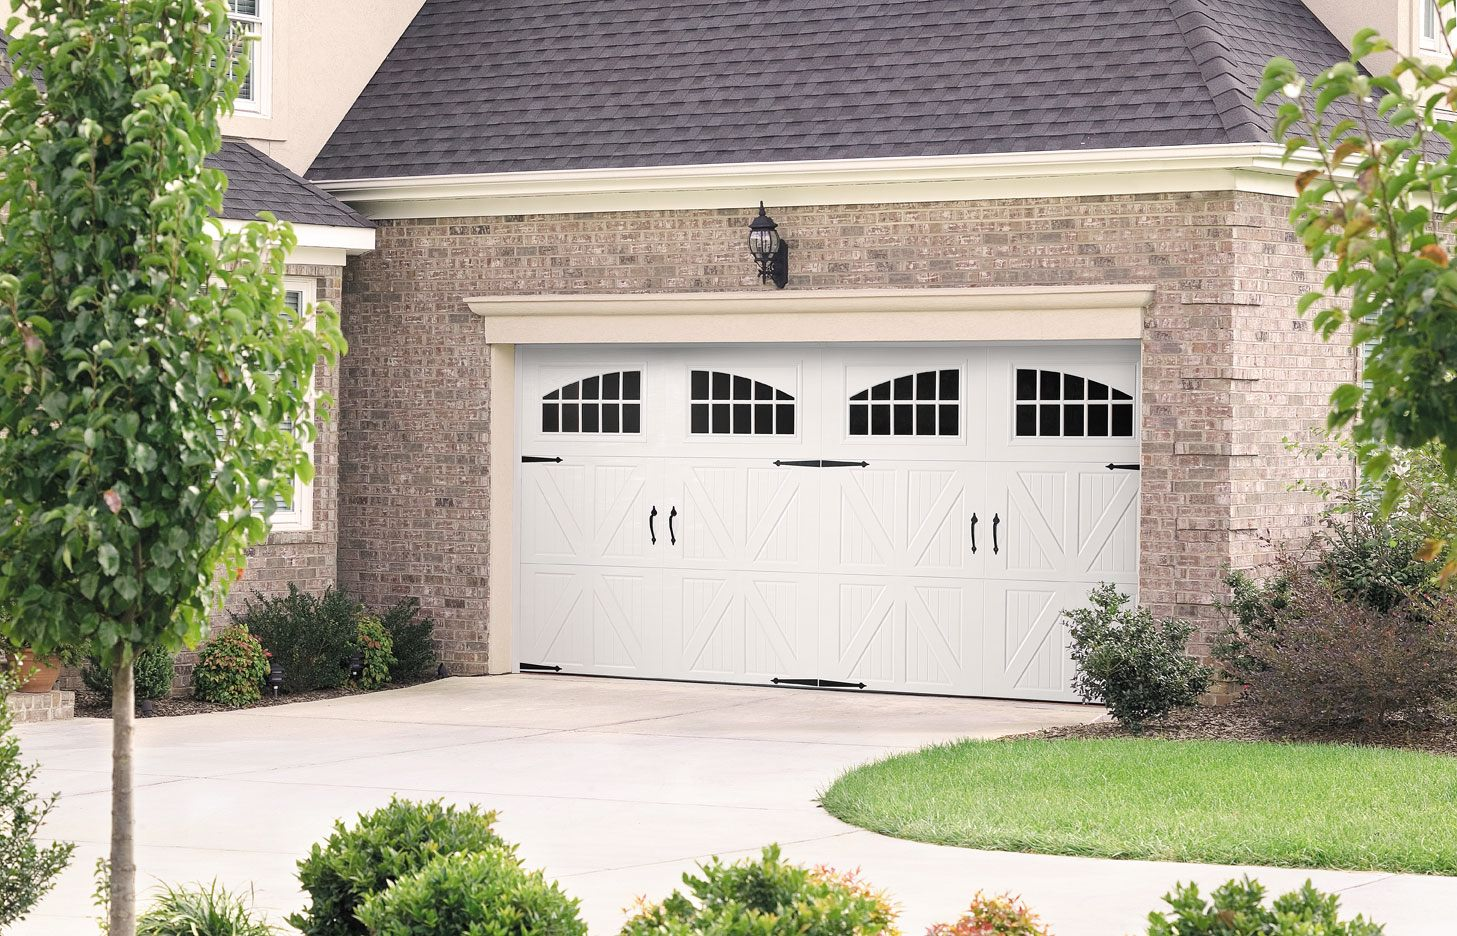 936 #718A41 Our Portfolio Gallery The Garage Door Depot Portage La Prairie pic Residential Garage Doors Direct 38211457